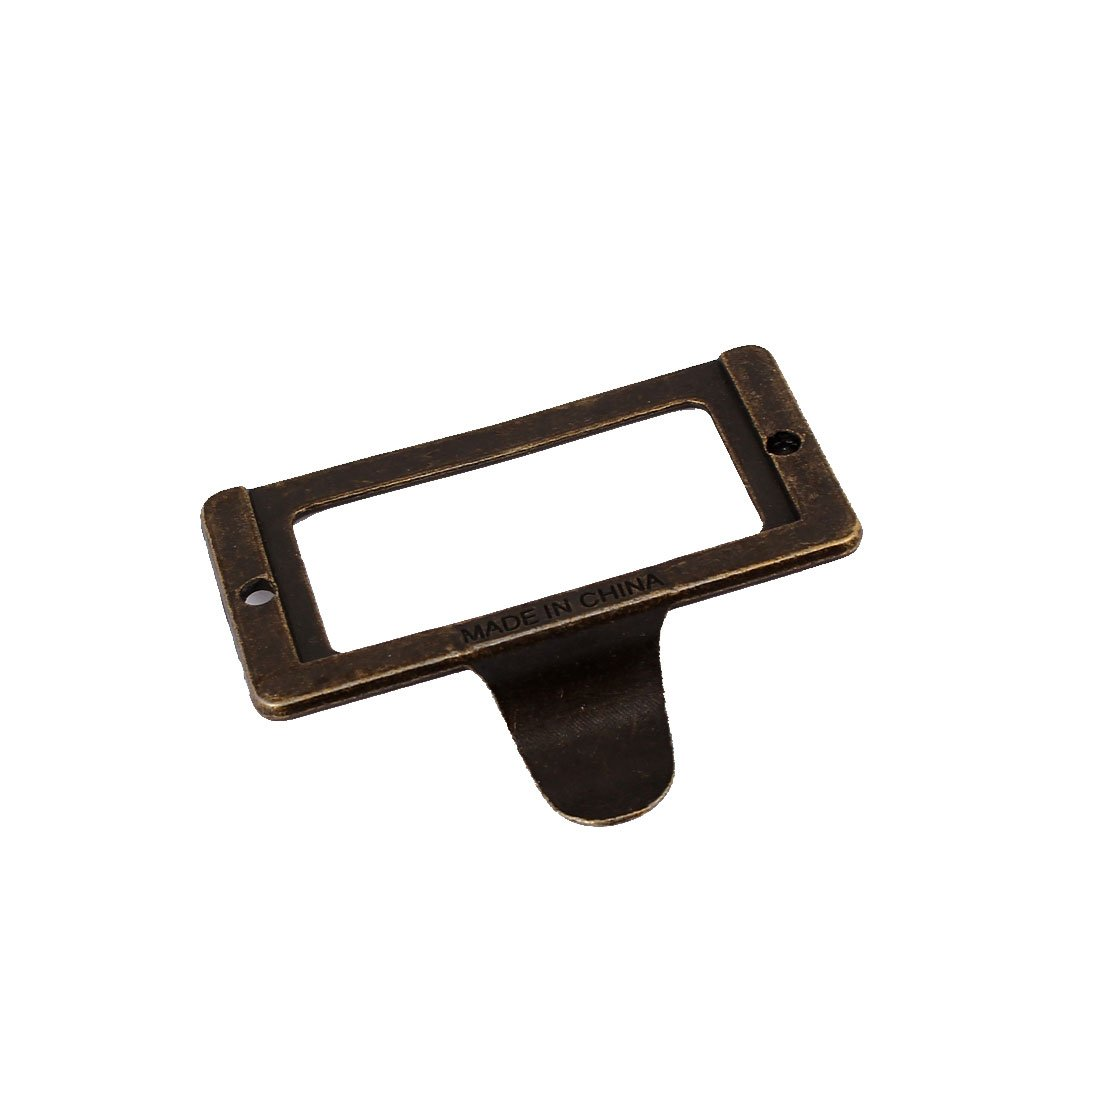 uxcell 58mm x 45mm Vintage Style Tag Lable Pull Handle for Box Cabinet Drawer 10PCS